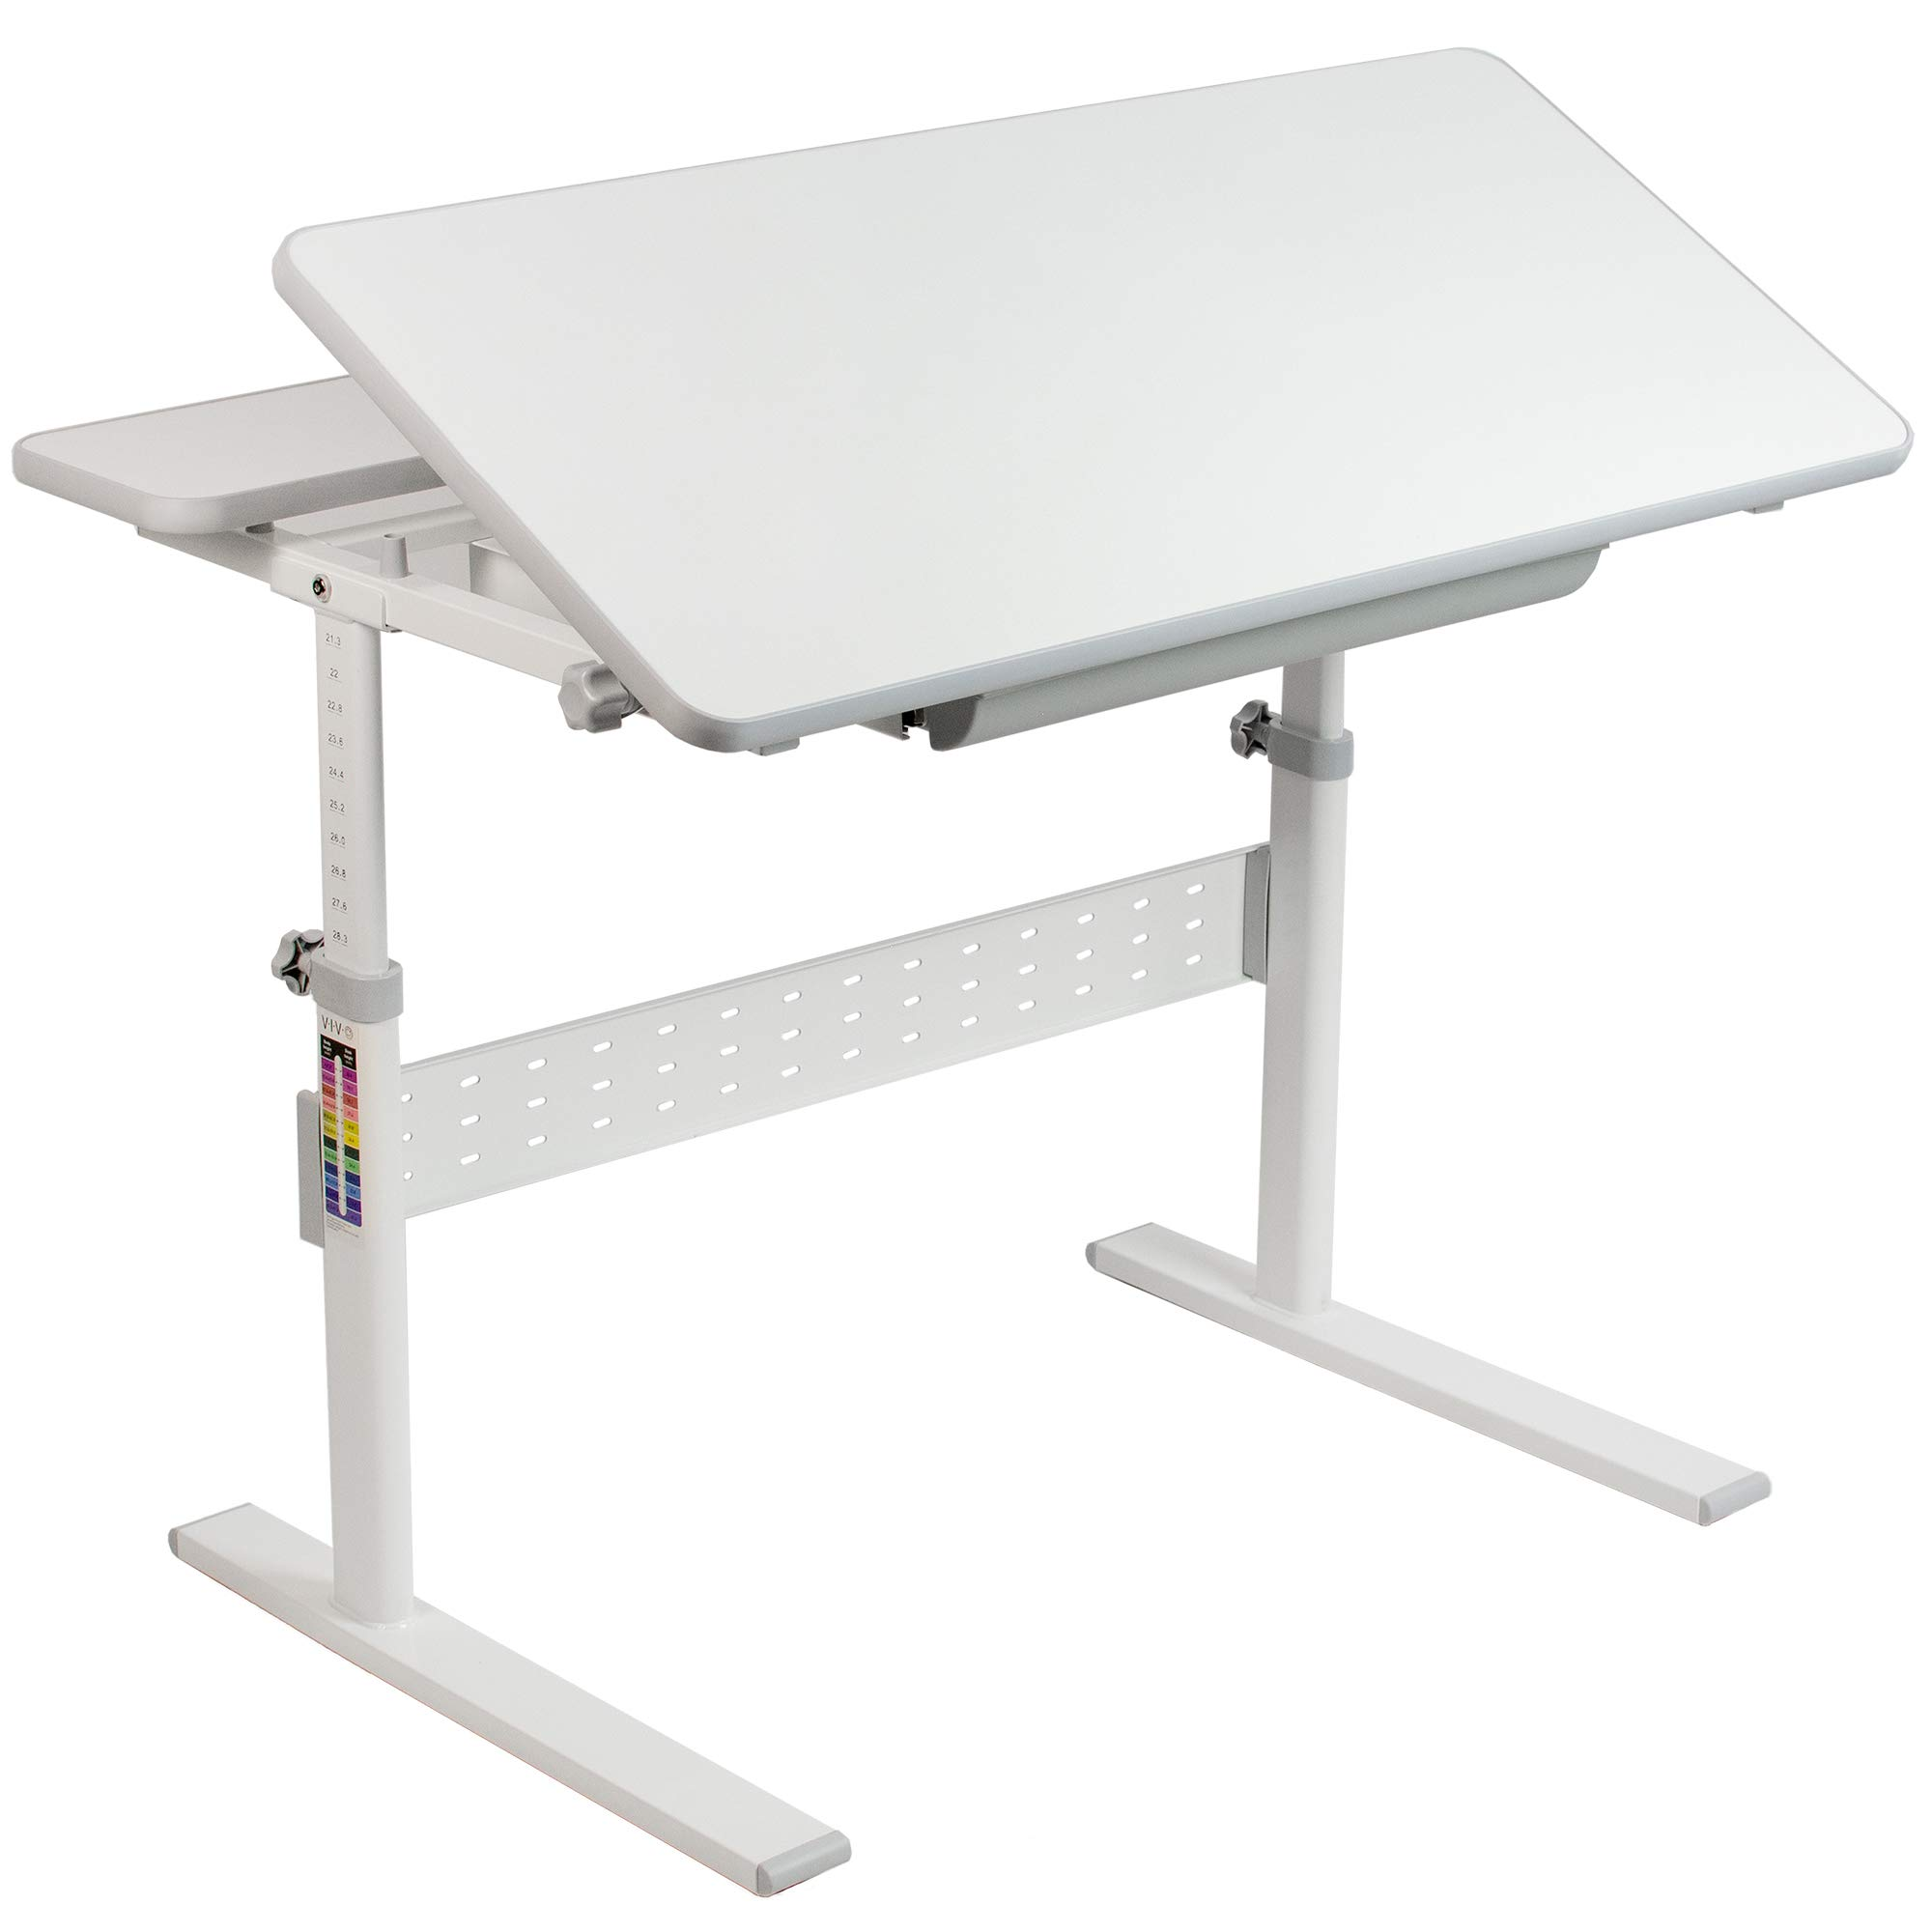 VIVO White Height Adjustable 38 inch Desk for Children | Kids Interactive and Ergonomic Sit to Stand Workstation with Tilting Desktop and Storage Drawer (DESK-V503G) by VIVO